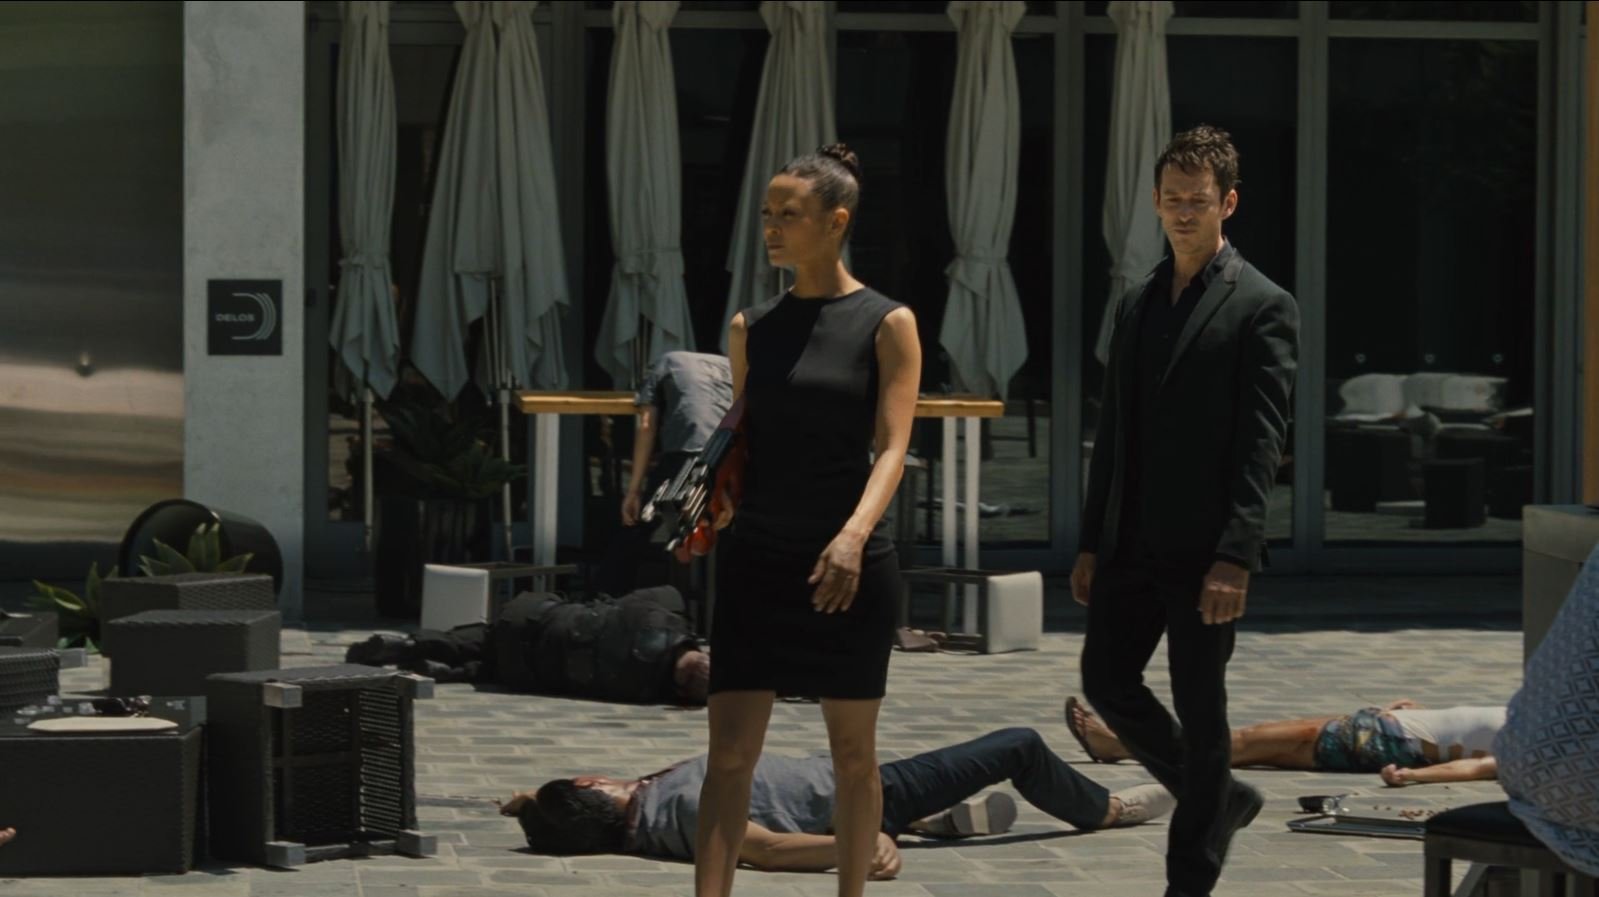 Westworld S02E01 Journey into Night Review - Maeve and Lee